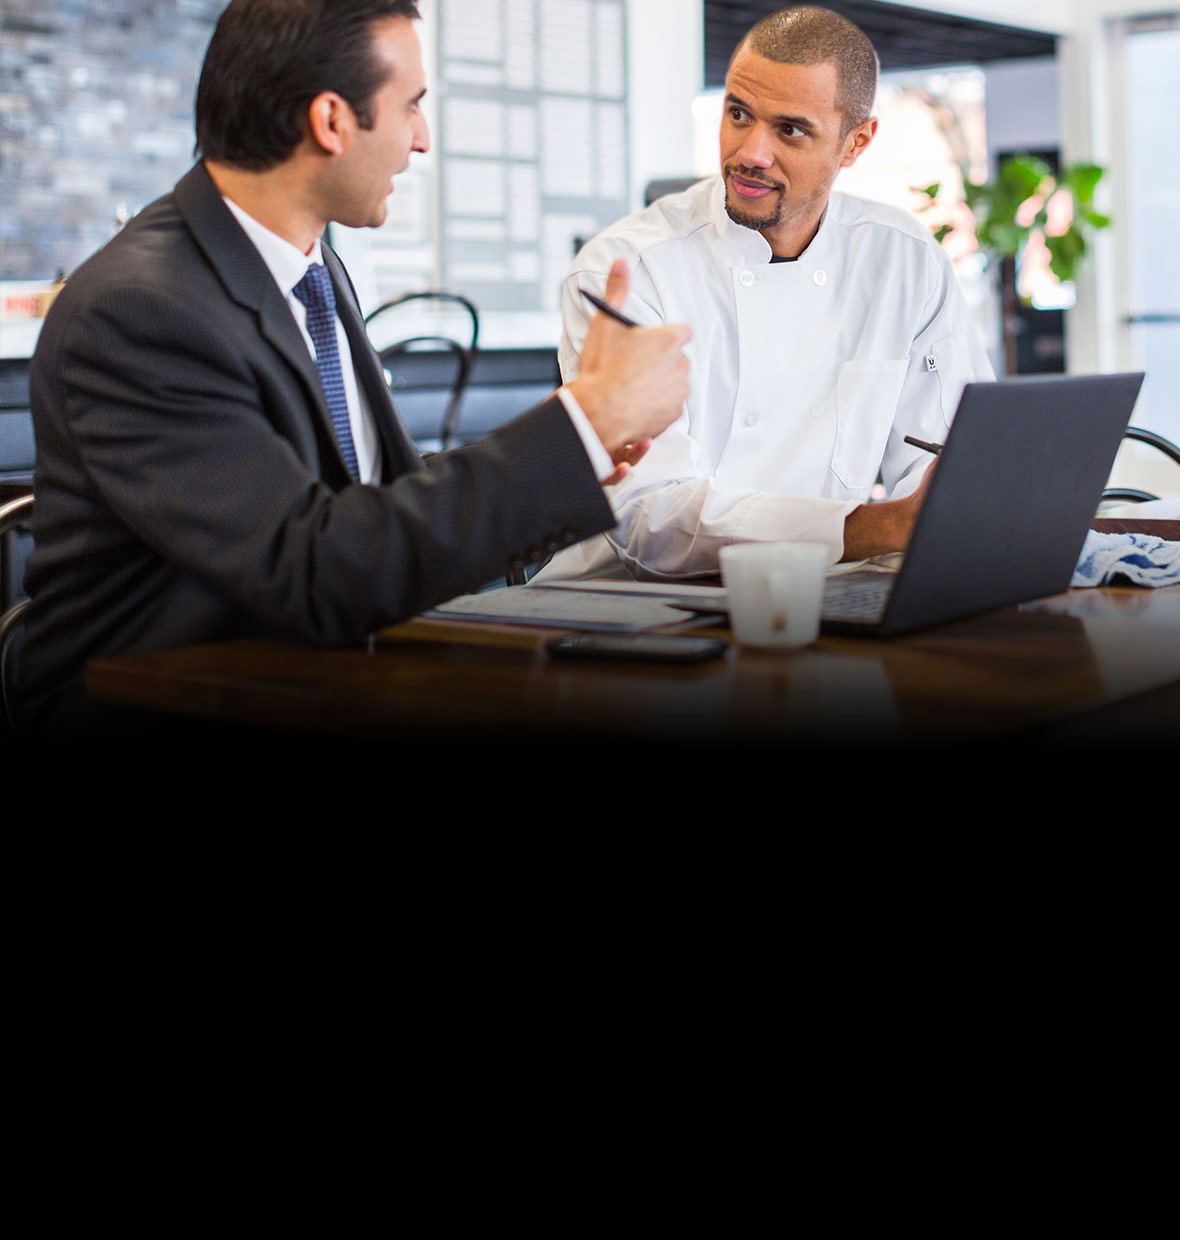 A business man and a chef sit discussing matters in front of a laptop in a restaurant.